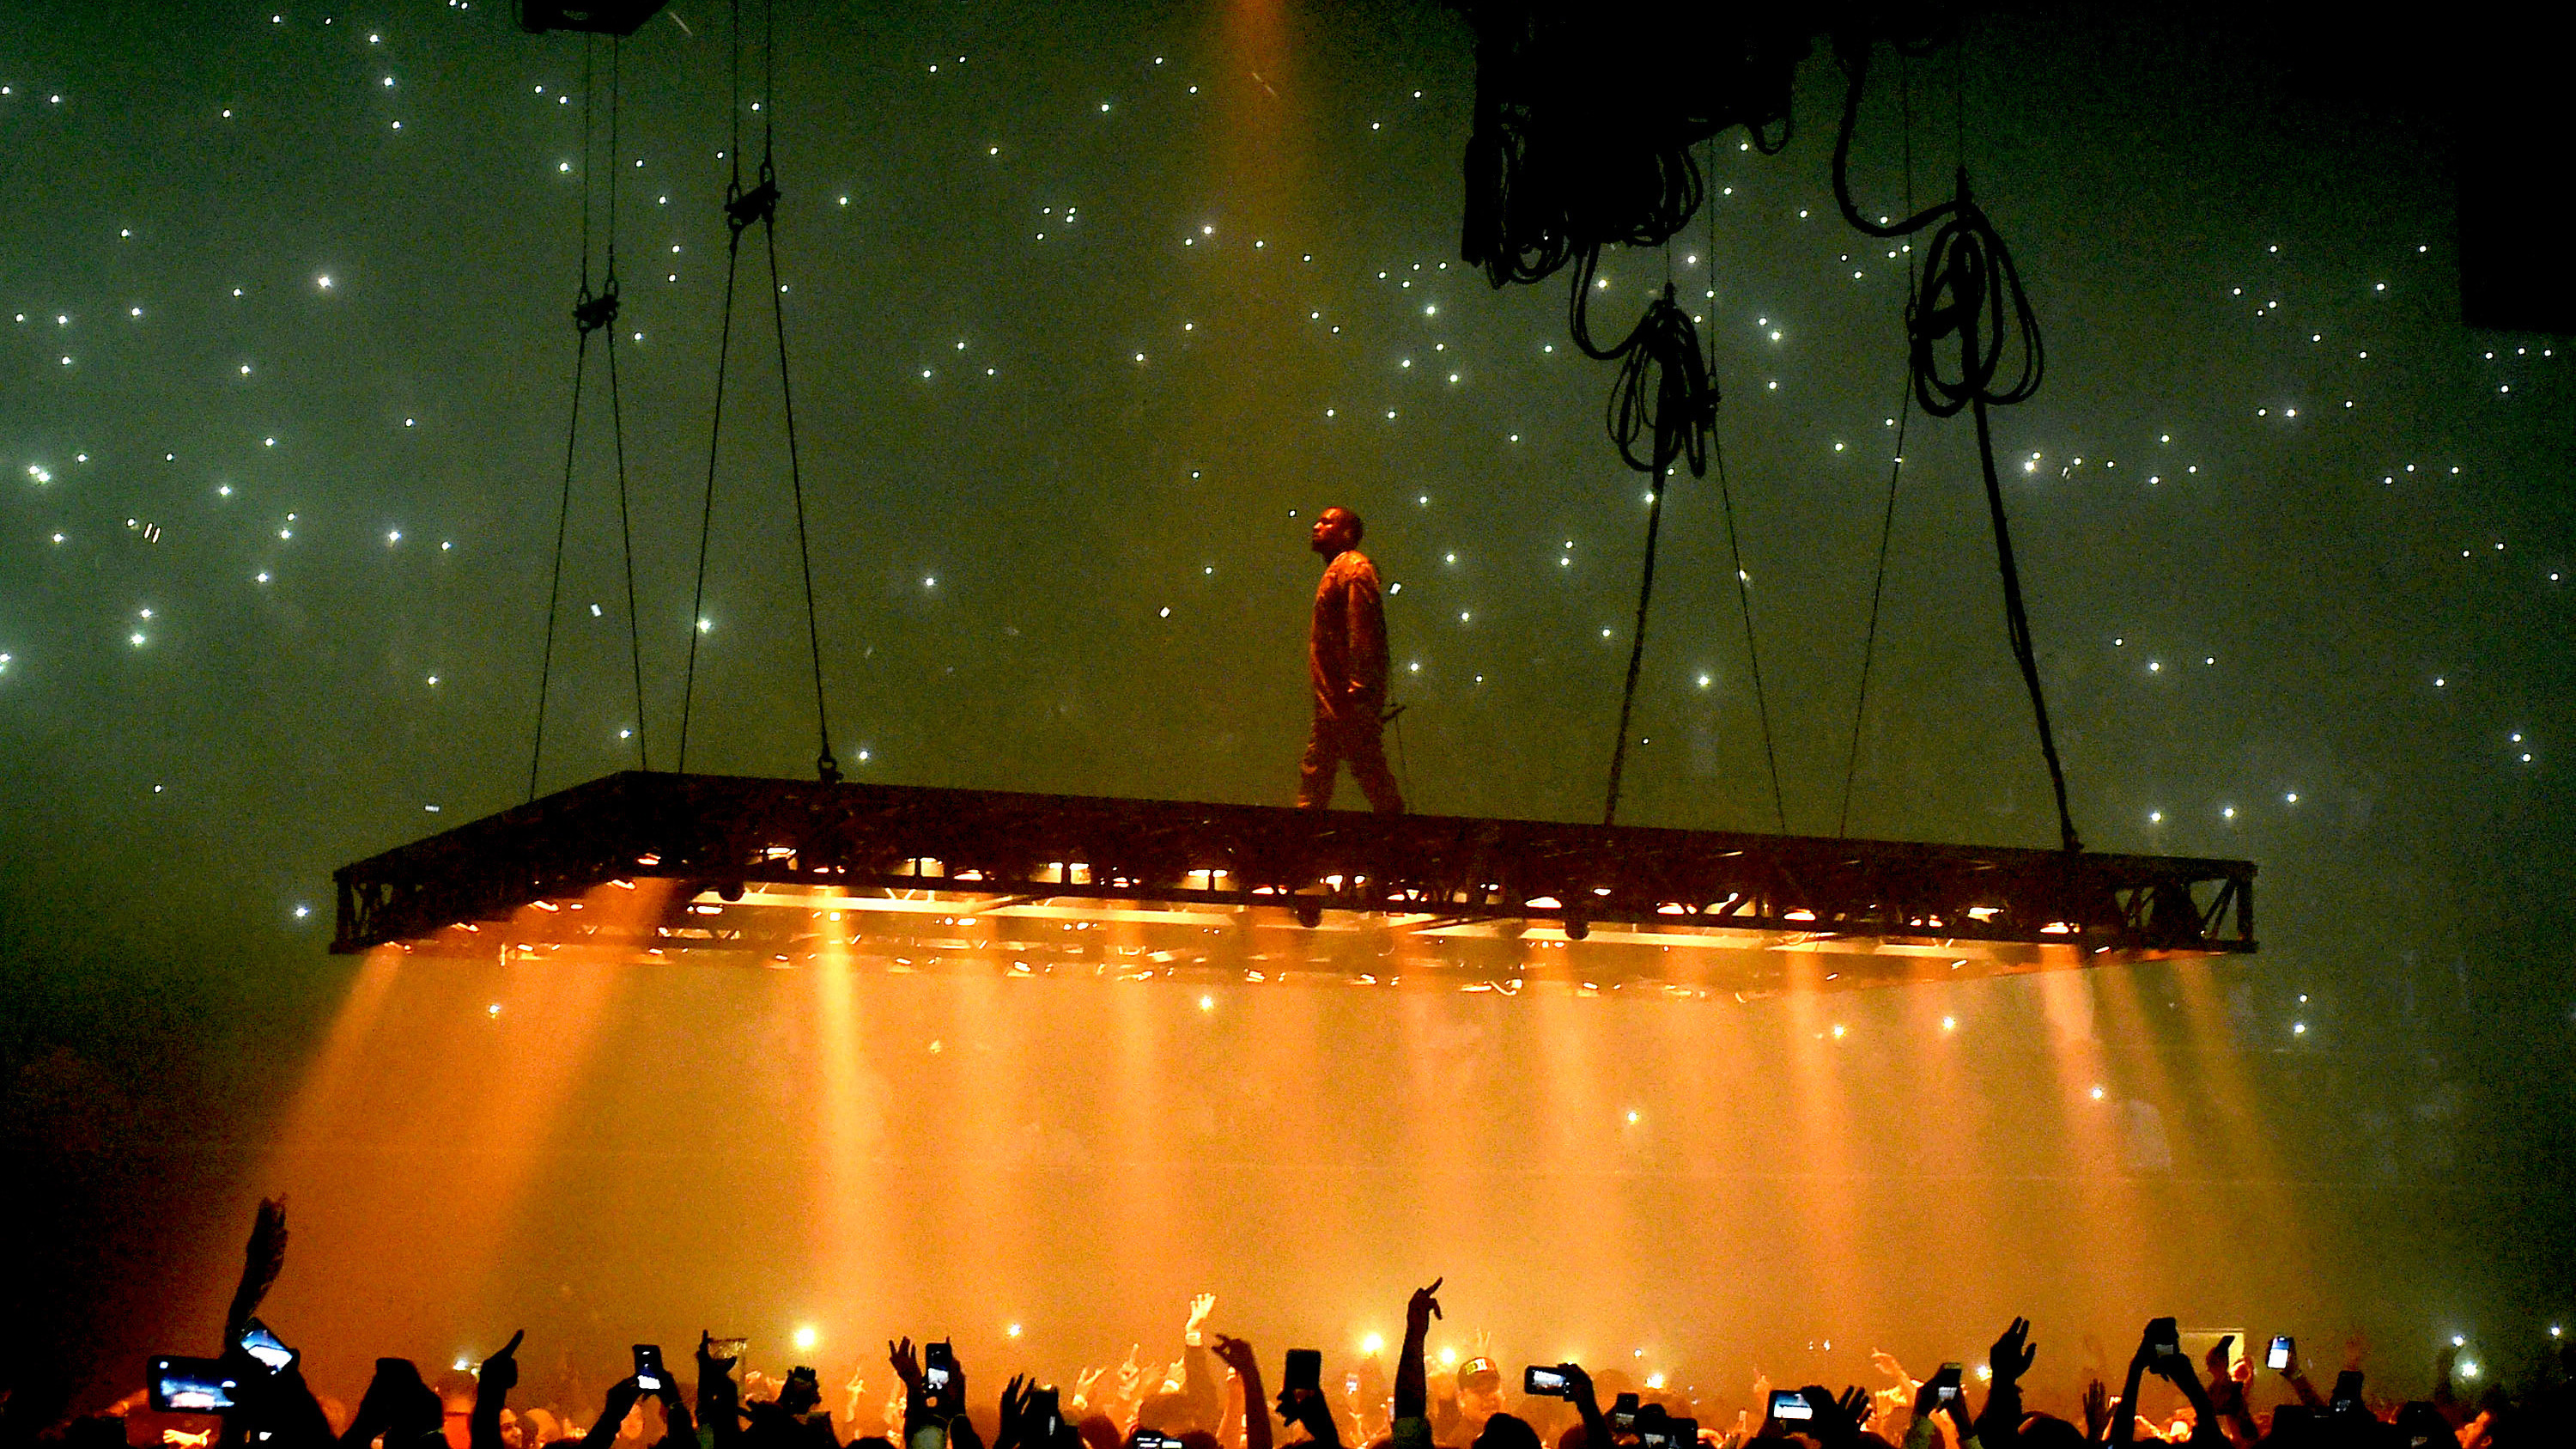 Car Audio Wallpaper Hd Kanye West Sues Lloyd S Of London Over Life Of Pablo Tour